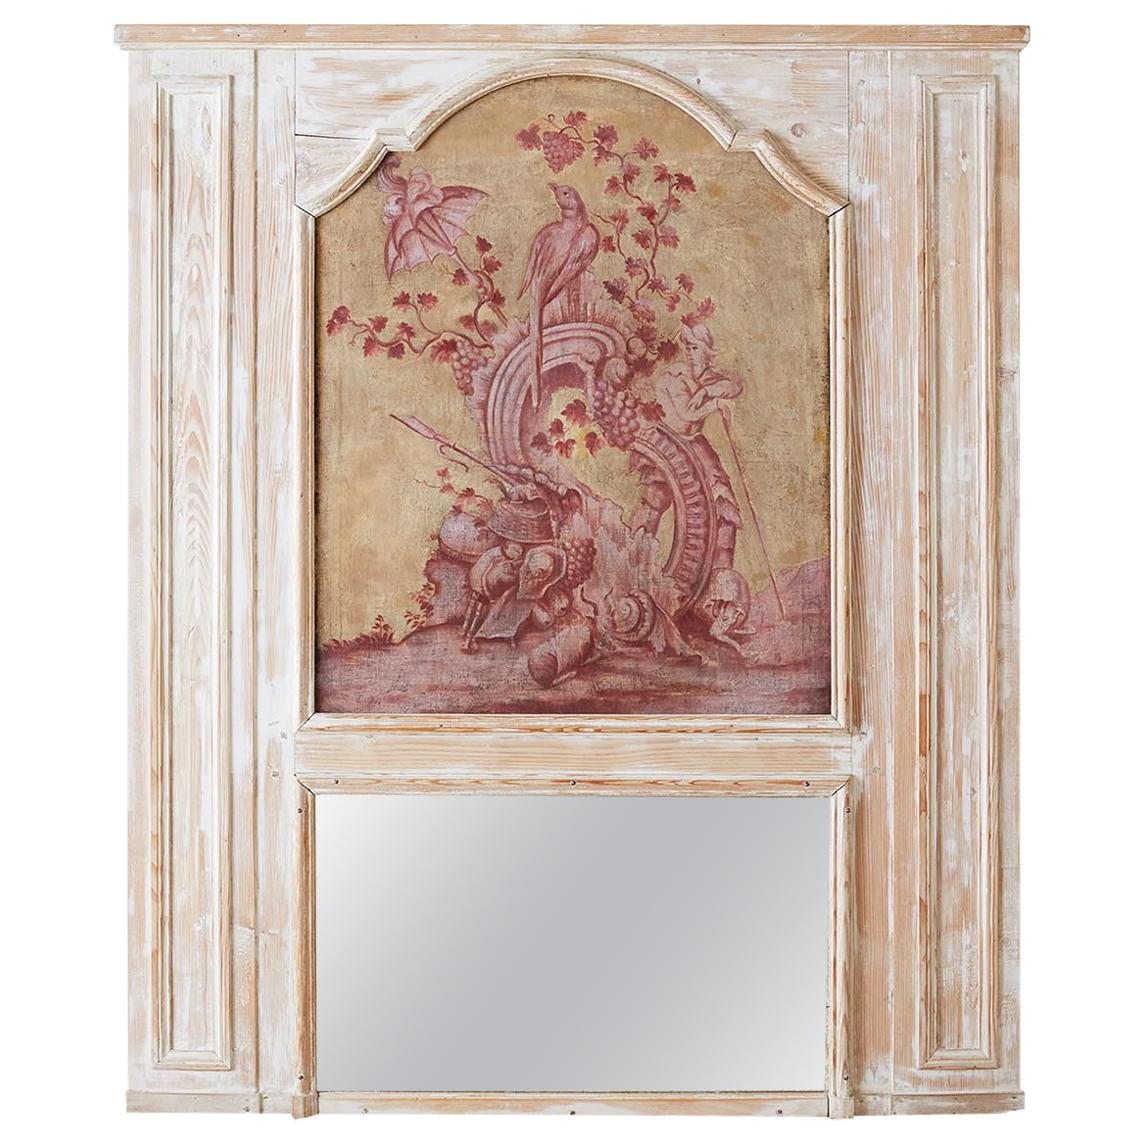 19th Century French Provincial Painted Trumeau Mirror